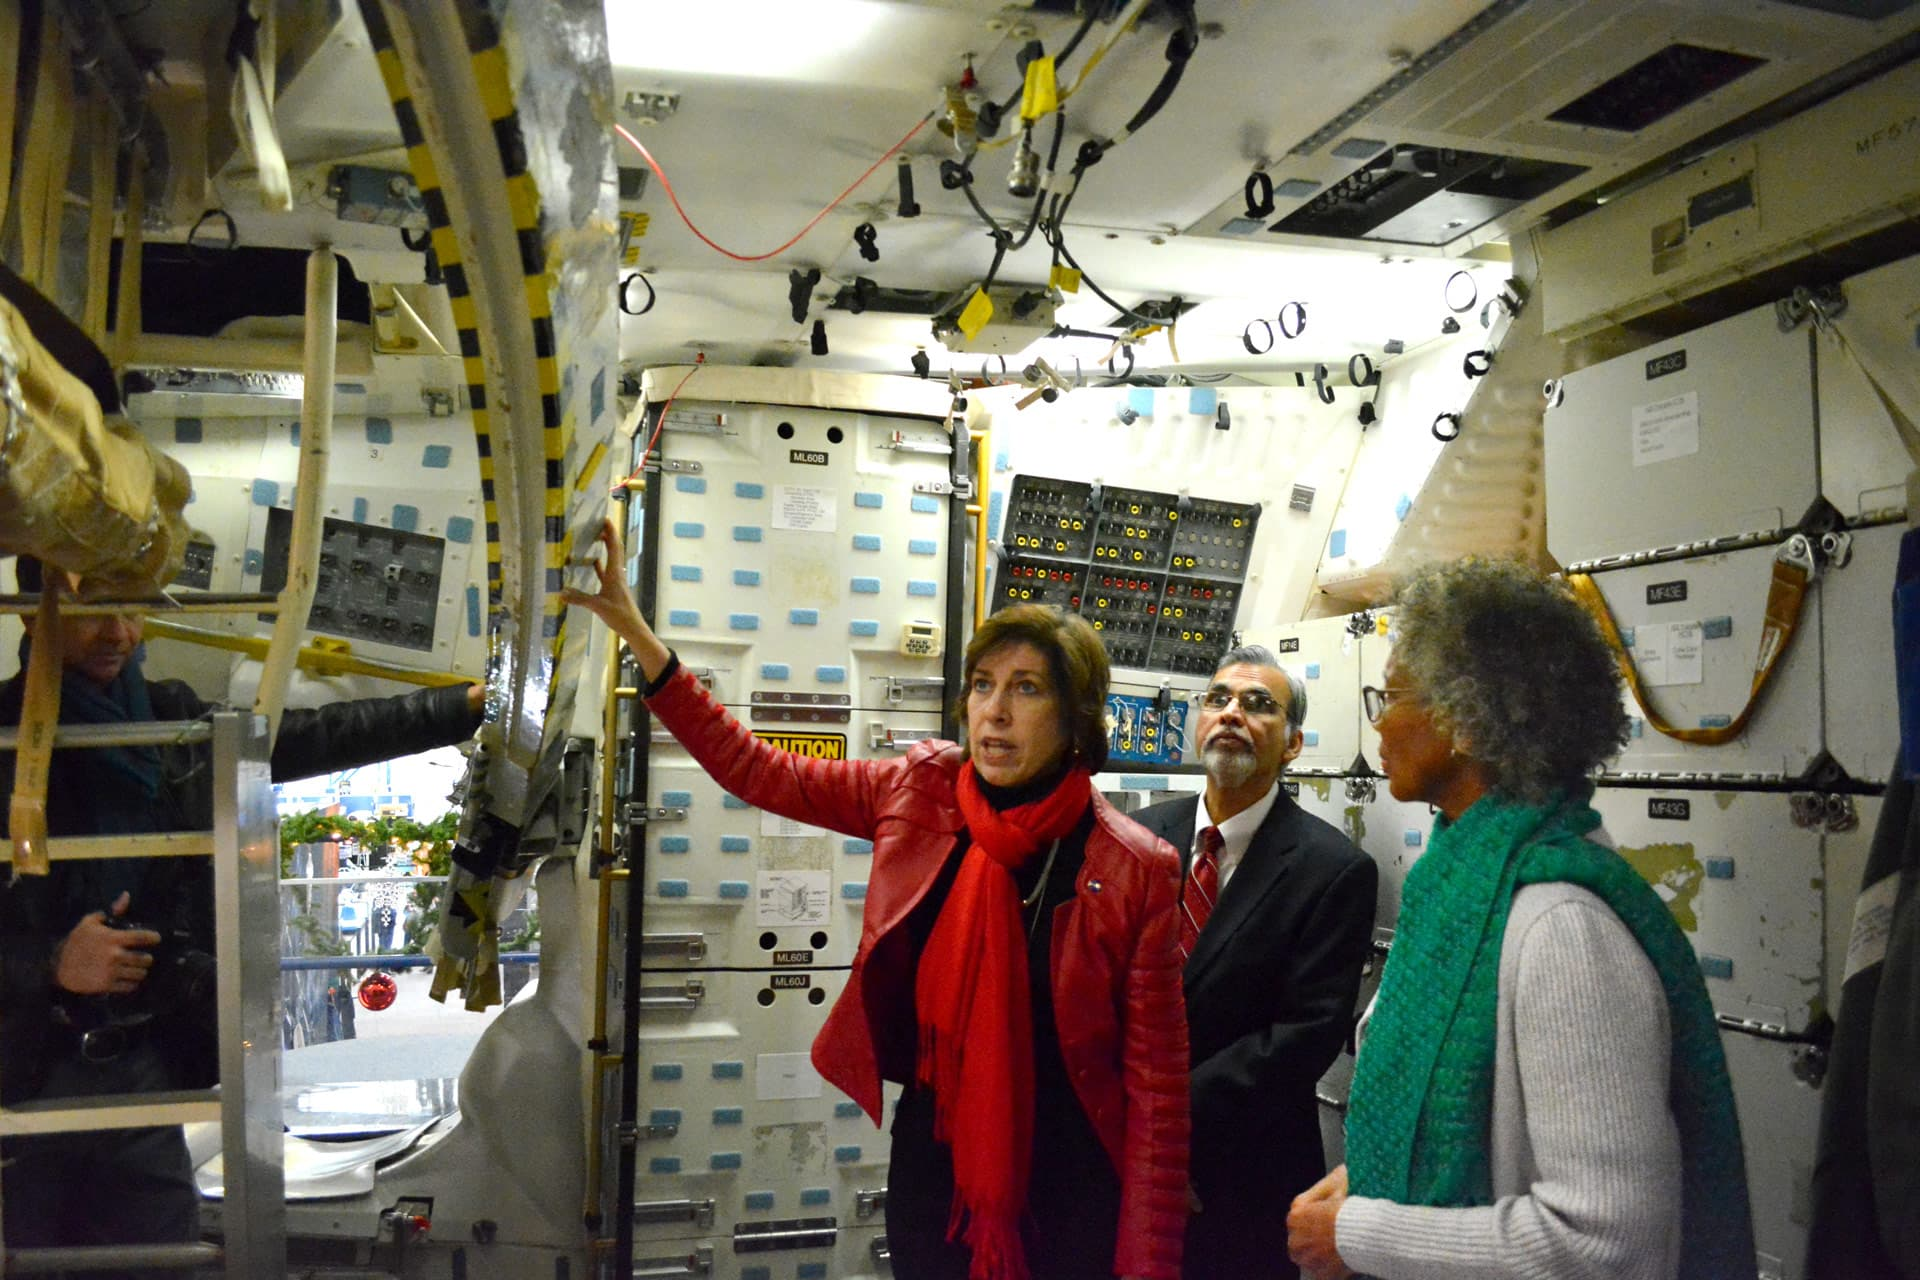 UHCL President visits NASA to discuss future opportunities for collaboration